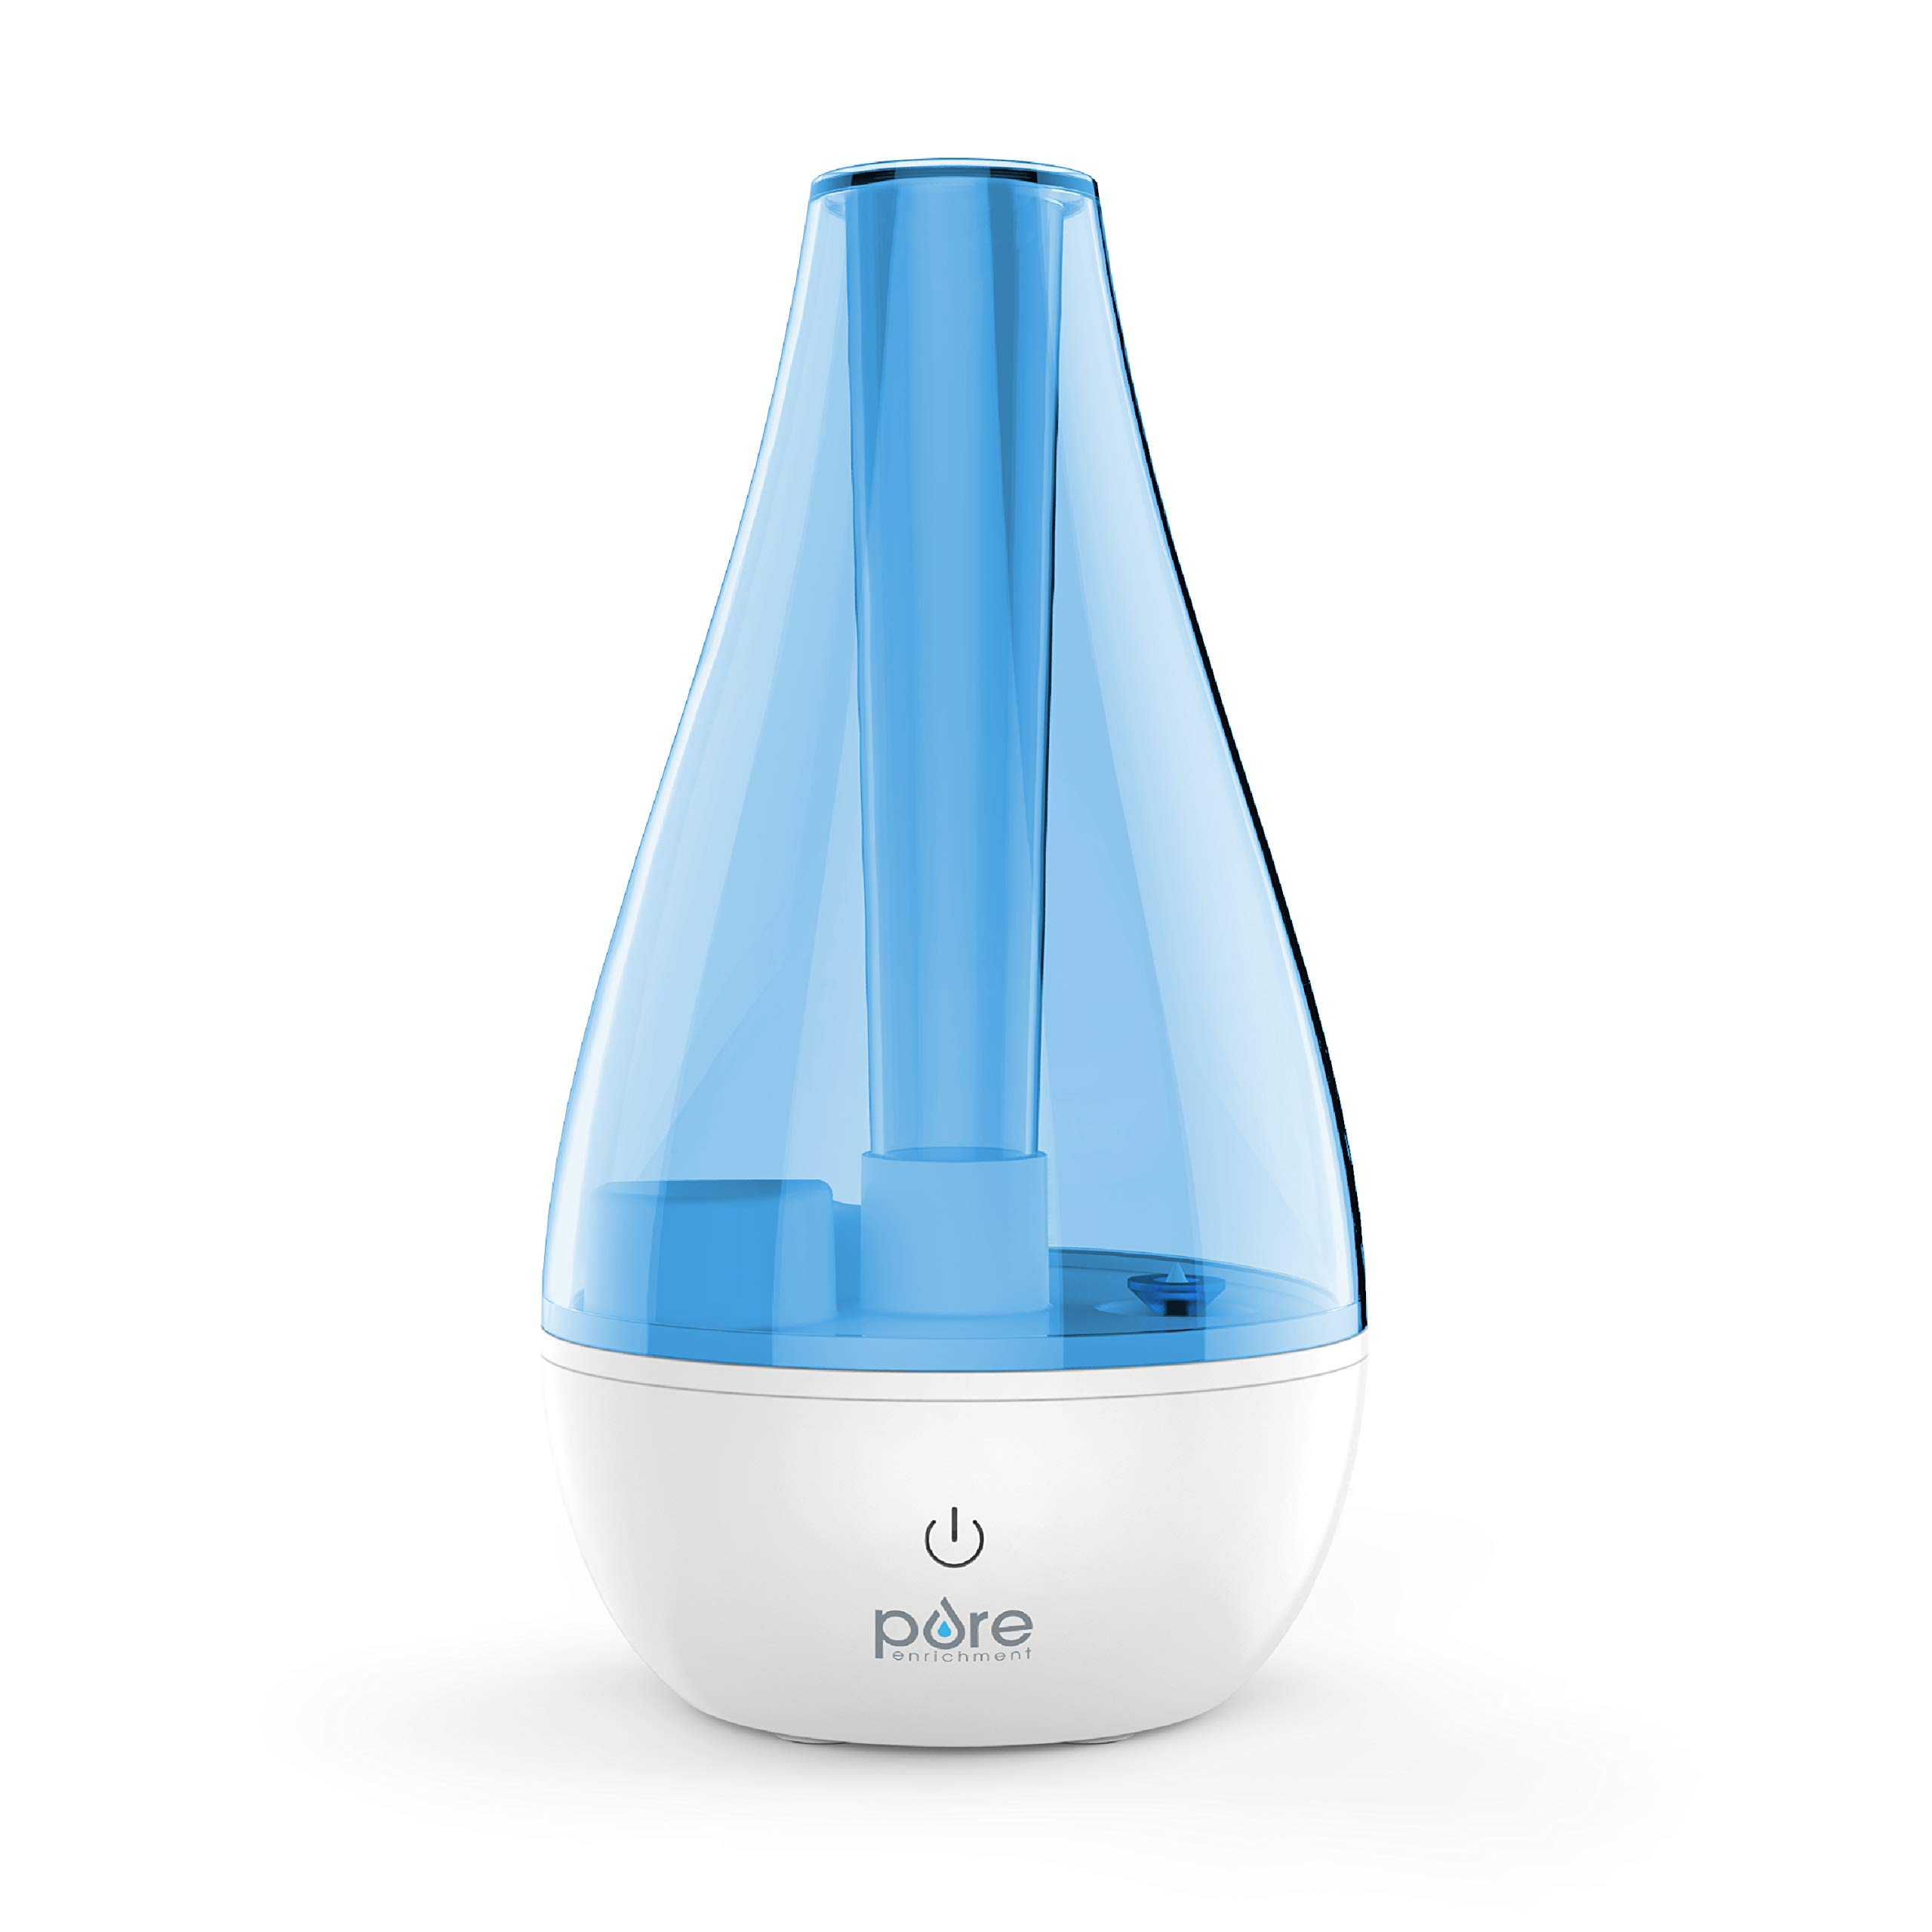 Pure Enrichment MistAire Studio Ultrasonic Cool Mist Humidifier for Small Rooms - Portable Humidifying Unit Ideal for Office with High and Low Mist Settings, Optional Night Light and Auto Shut-Off